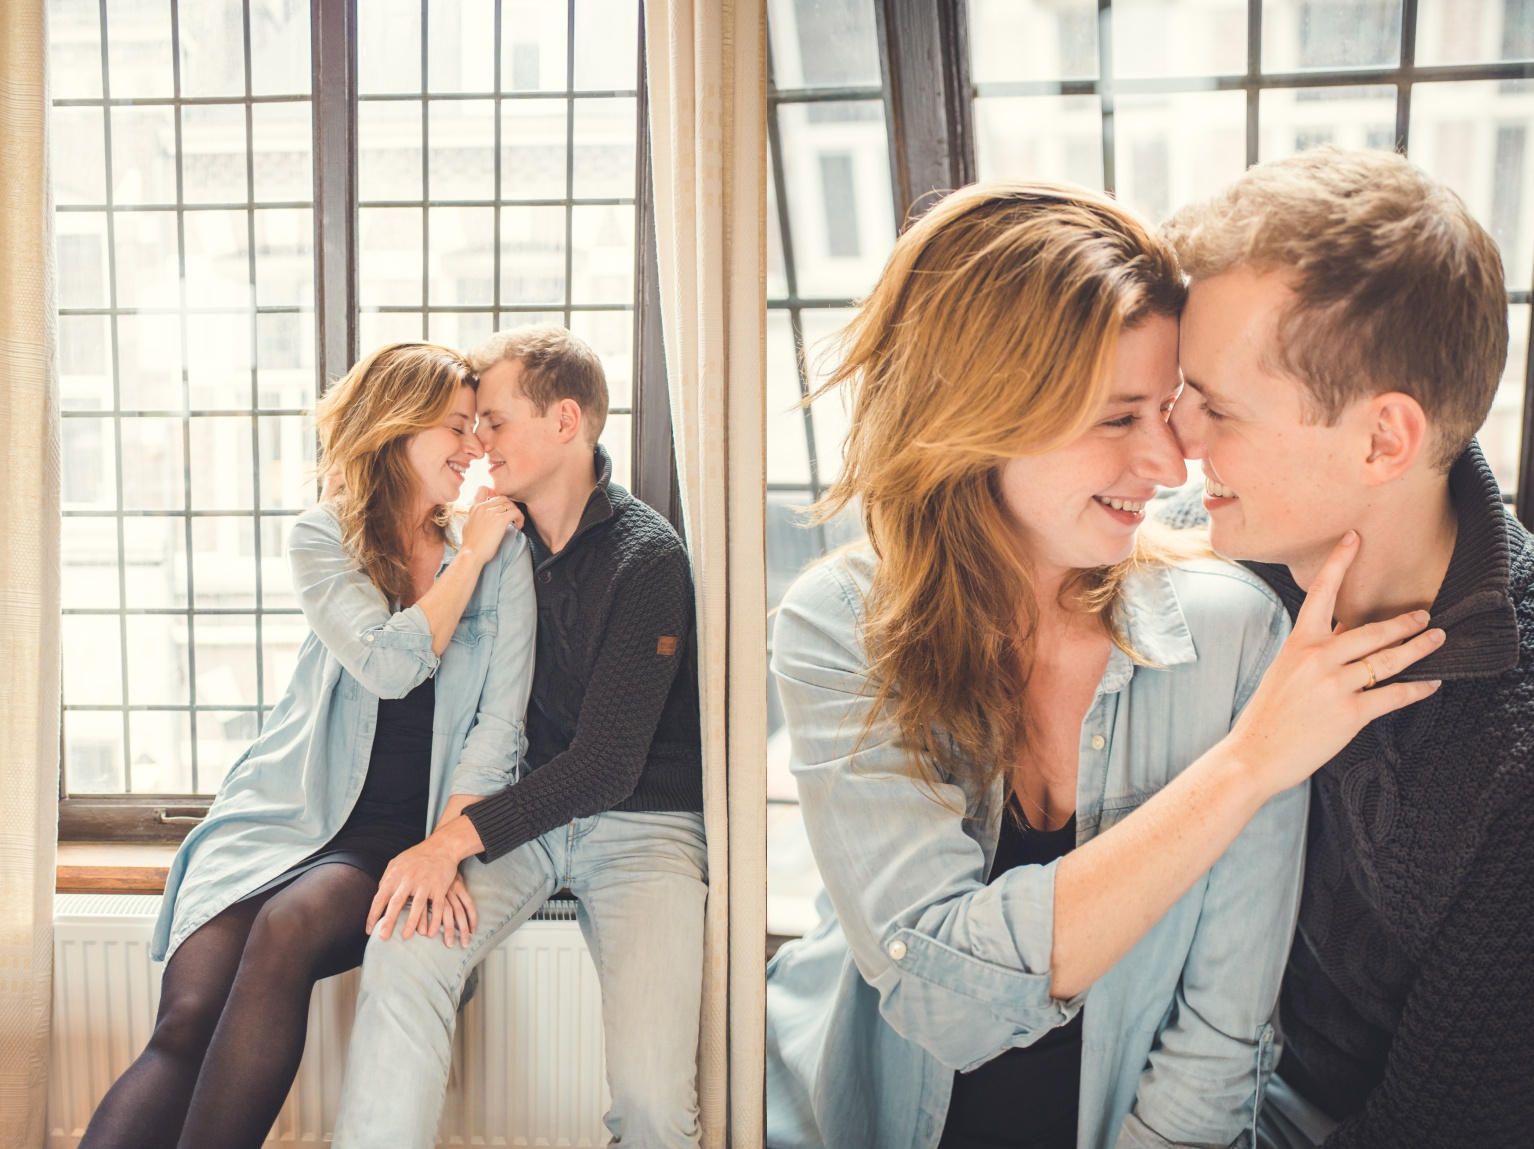 in-home loveshoot tilburg copyright eline den hond